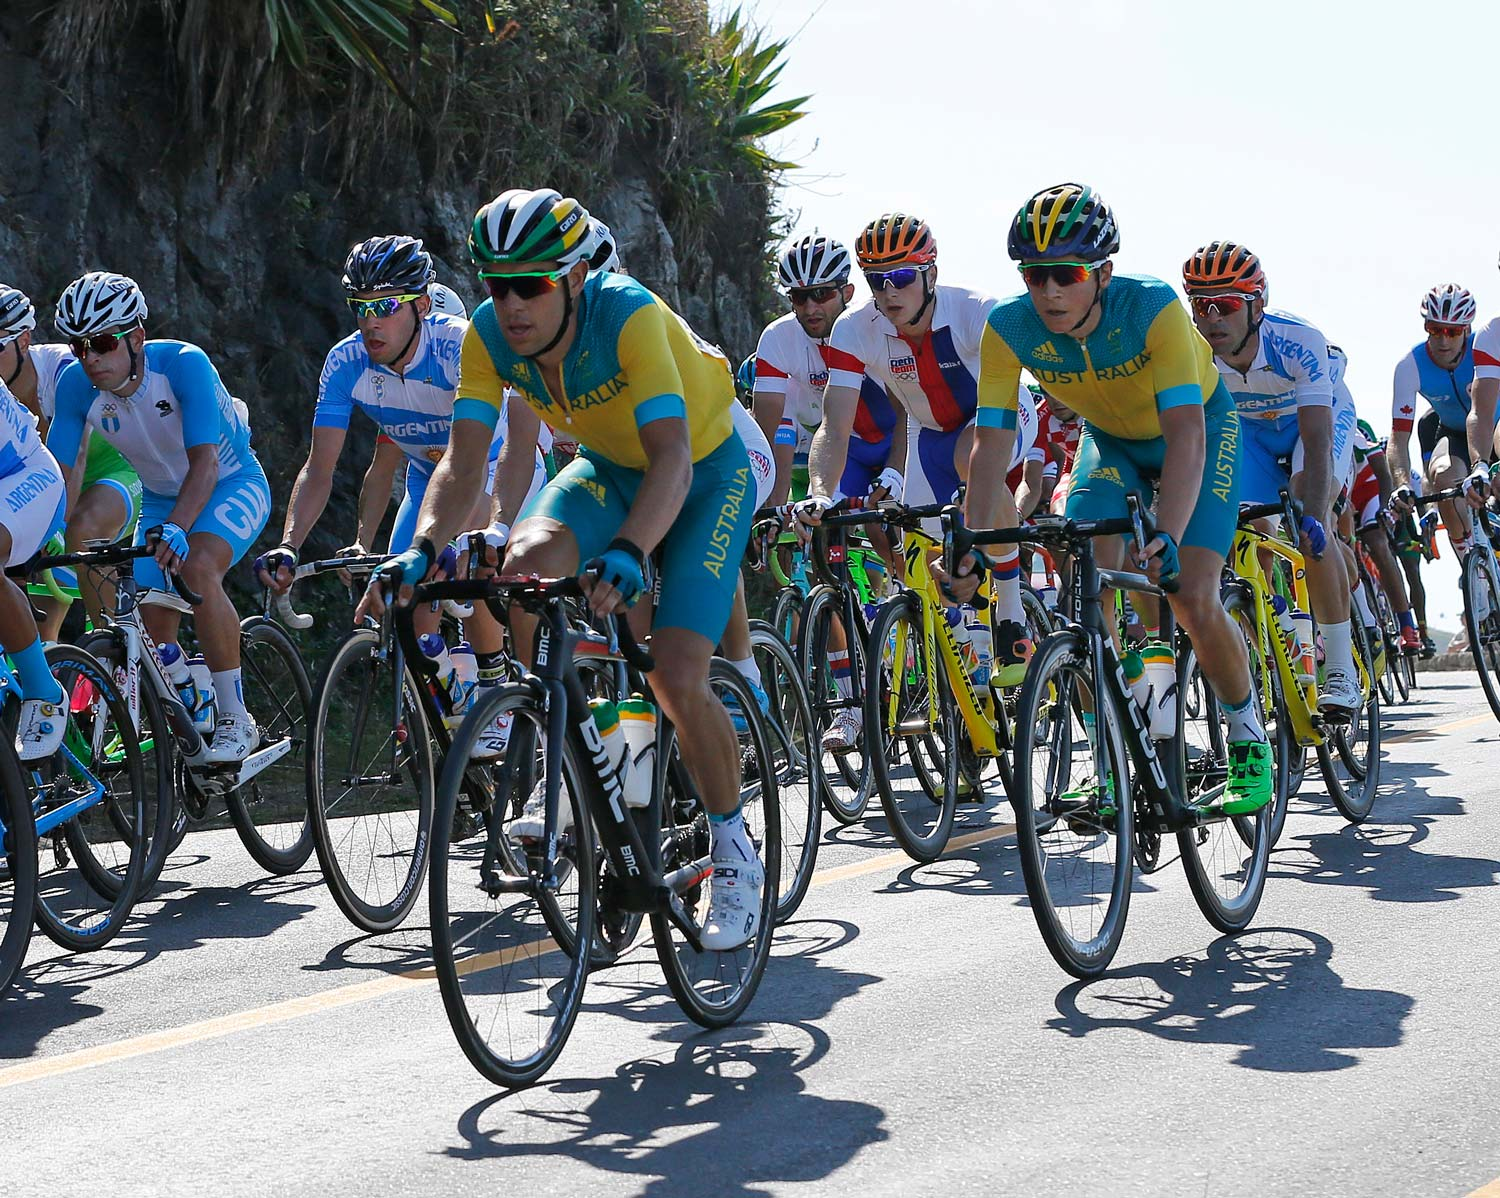 Two Tasmanians in action in the Rio road race – Richie Porte and Scott Bowden. Photo: Yuzuru Sunada